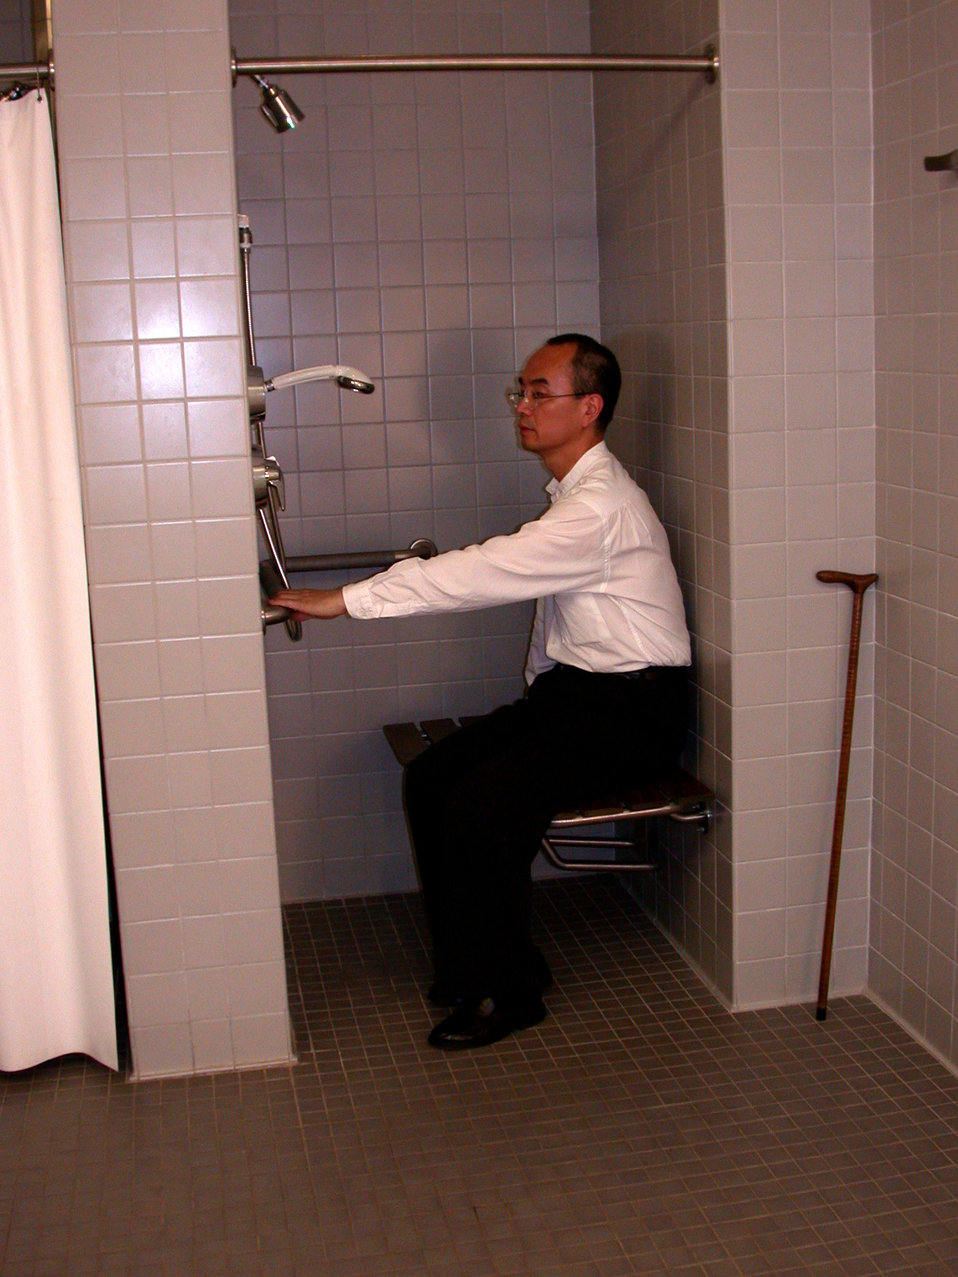 This image showed a man sitting on a folding, wall mounted seat in the down position inside a small 3' x 3', 'curbless' shower. The person w